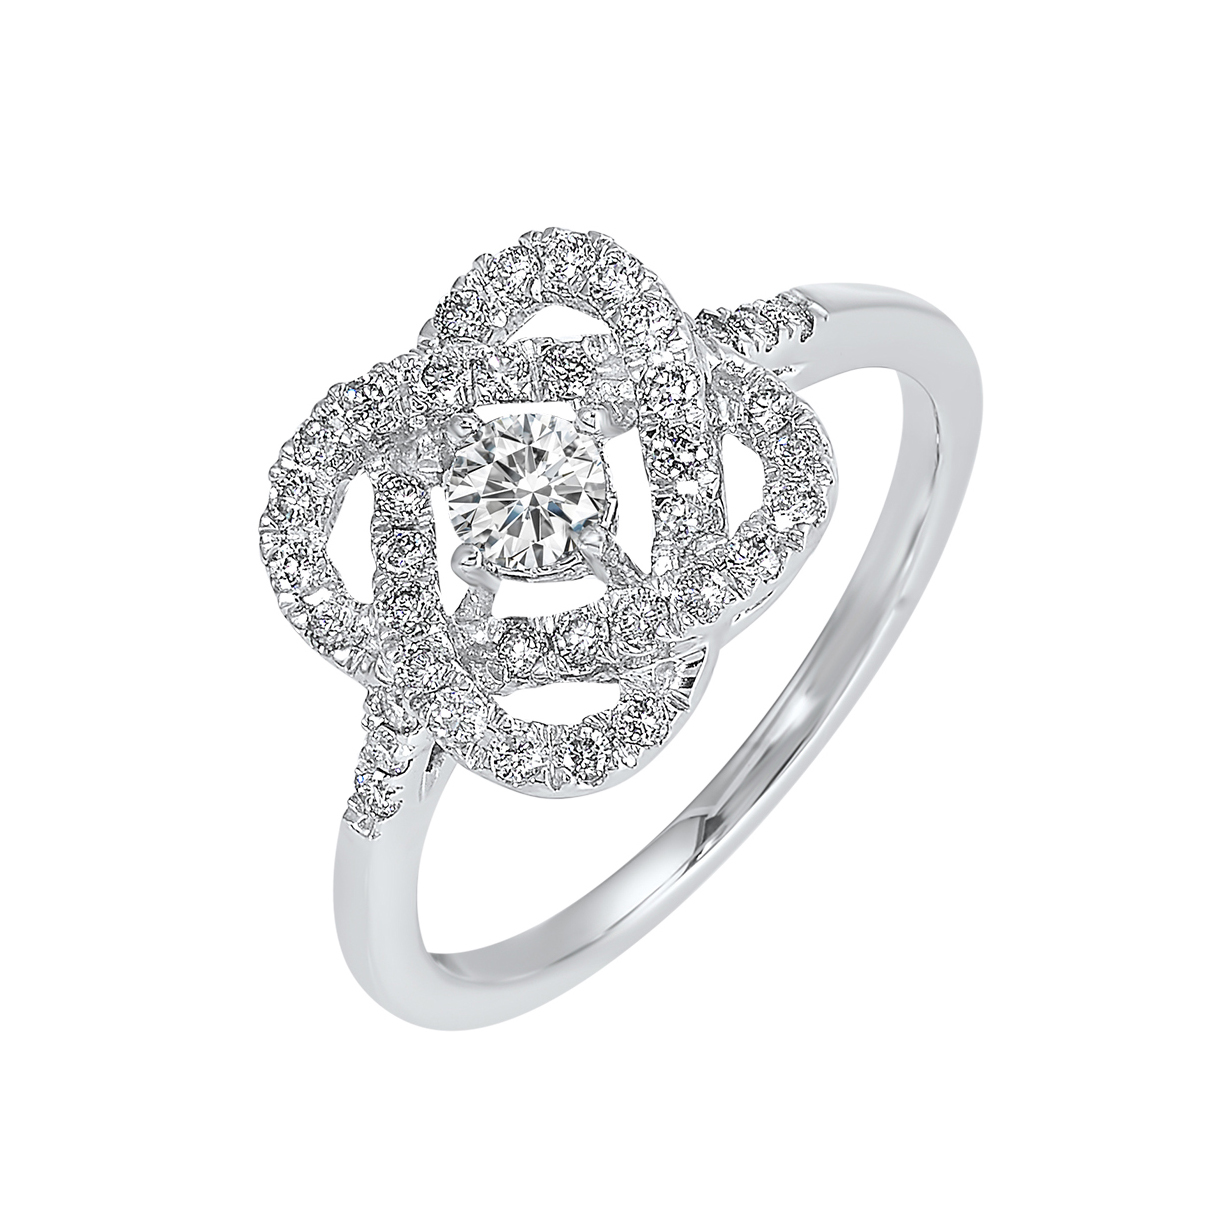 Love's Crossing Diamond Ring in 14K White Gold (1/4 ct. tw.) Moseley Diamond Showcase Inc Columbia, SC